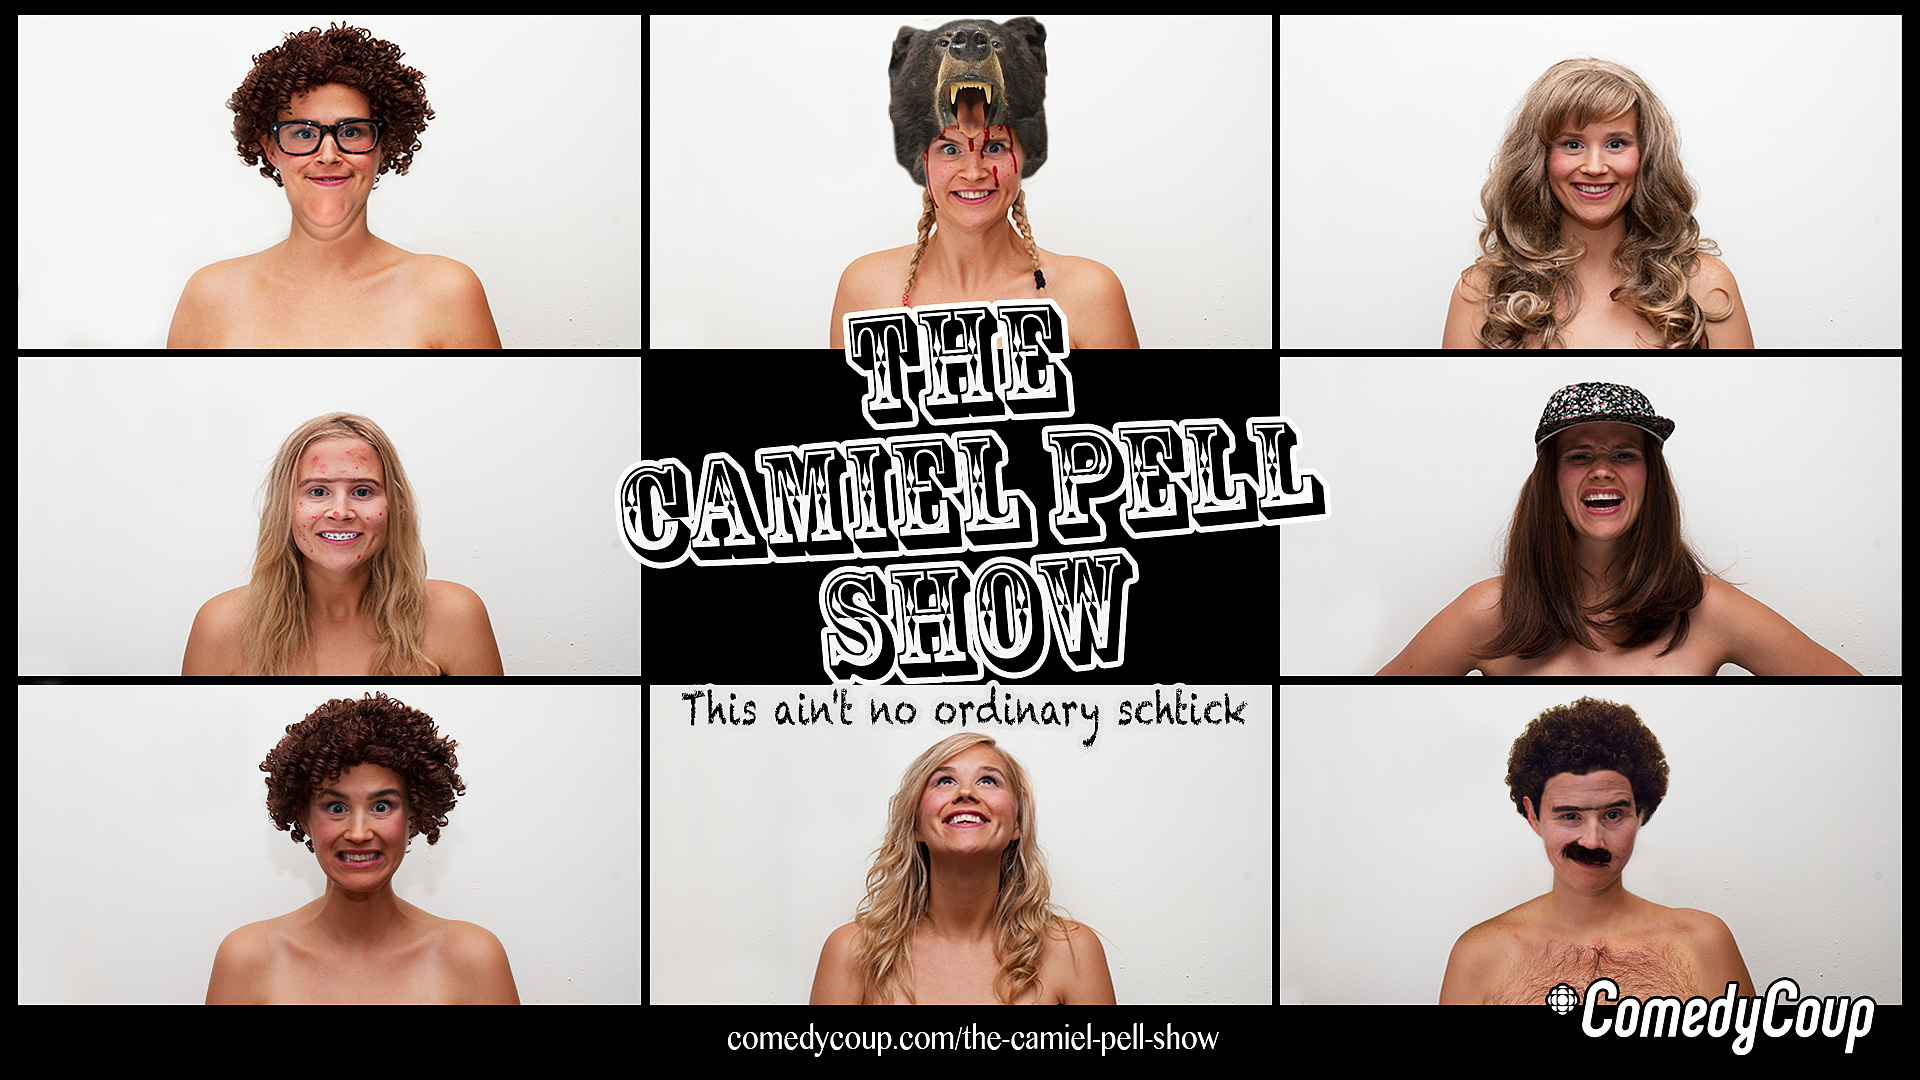 Week 4 Key It: Poster A The Camiel Pell Show